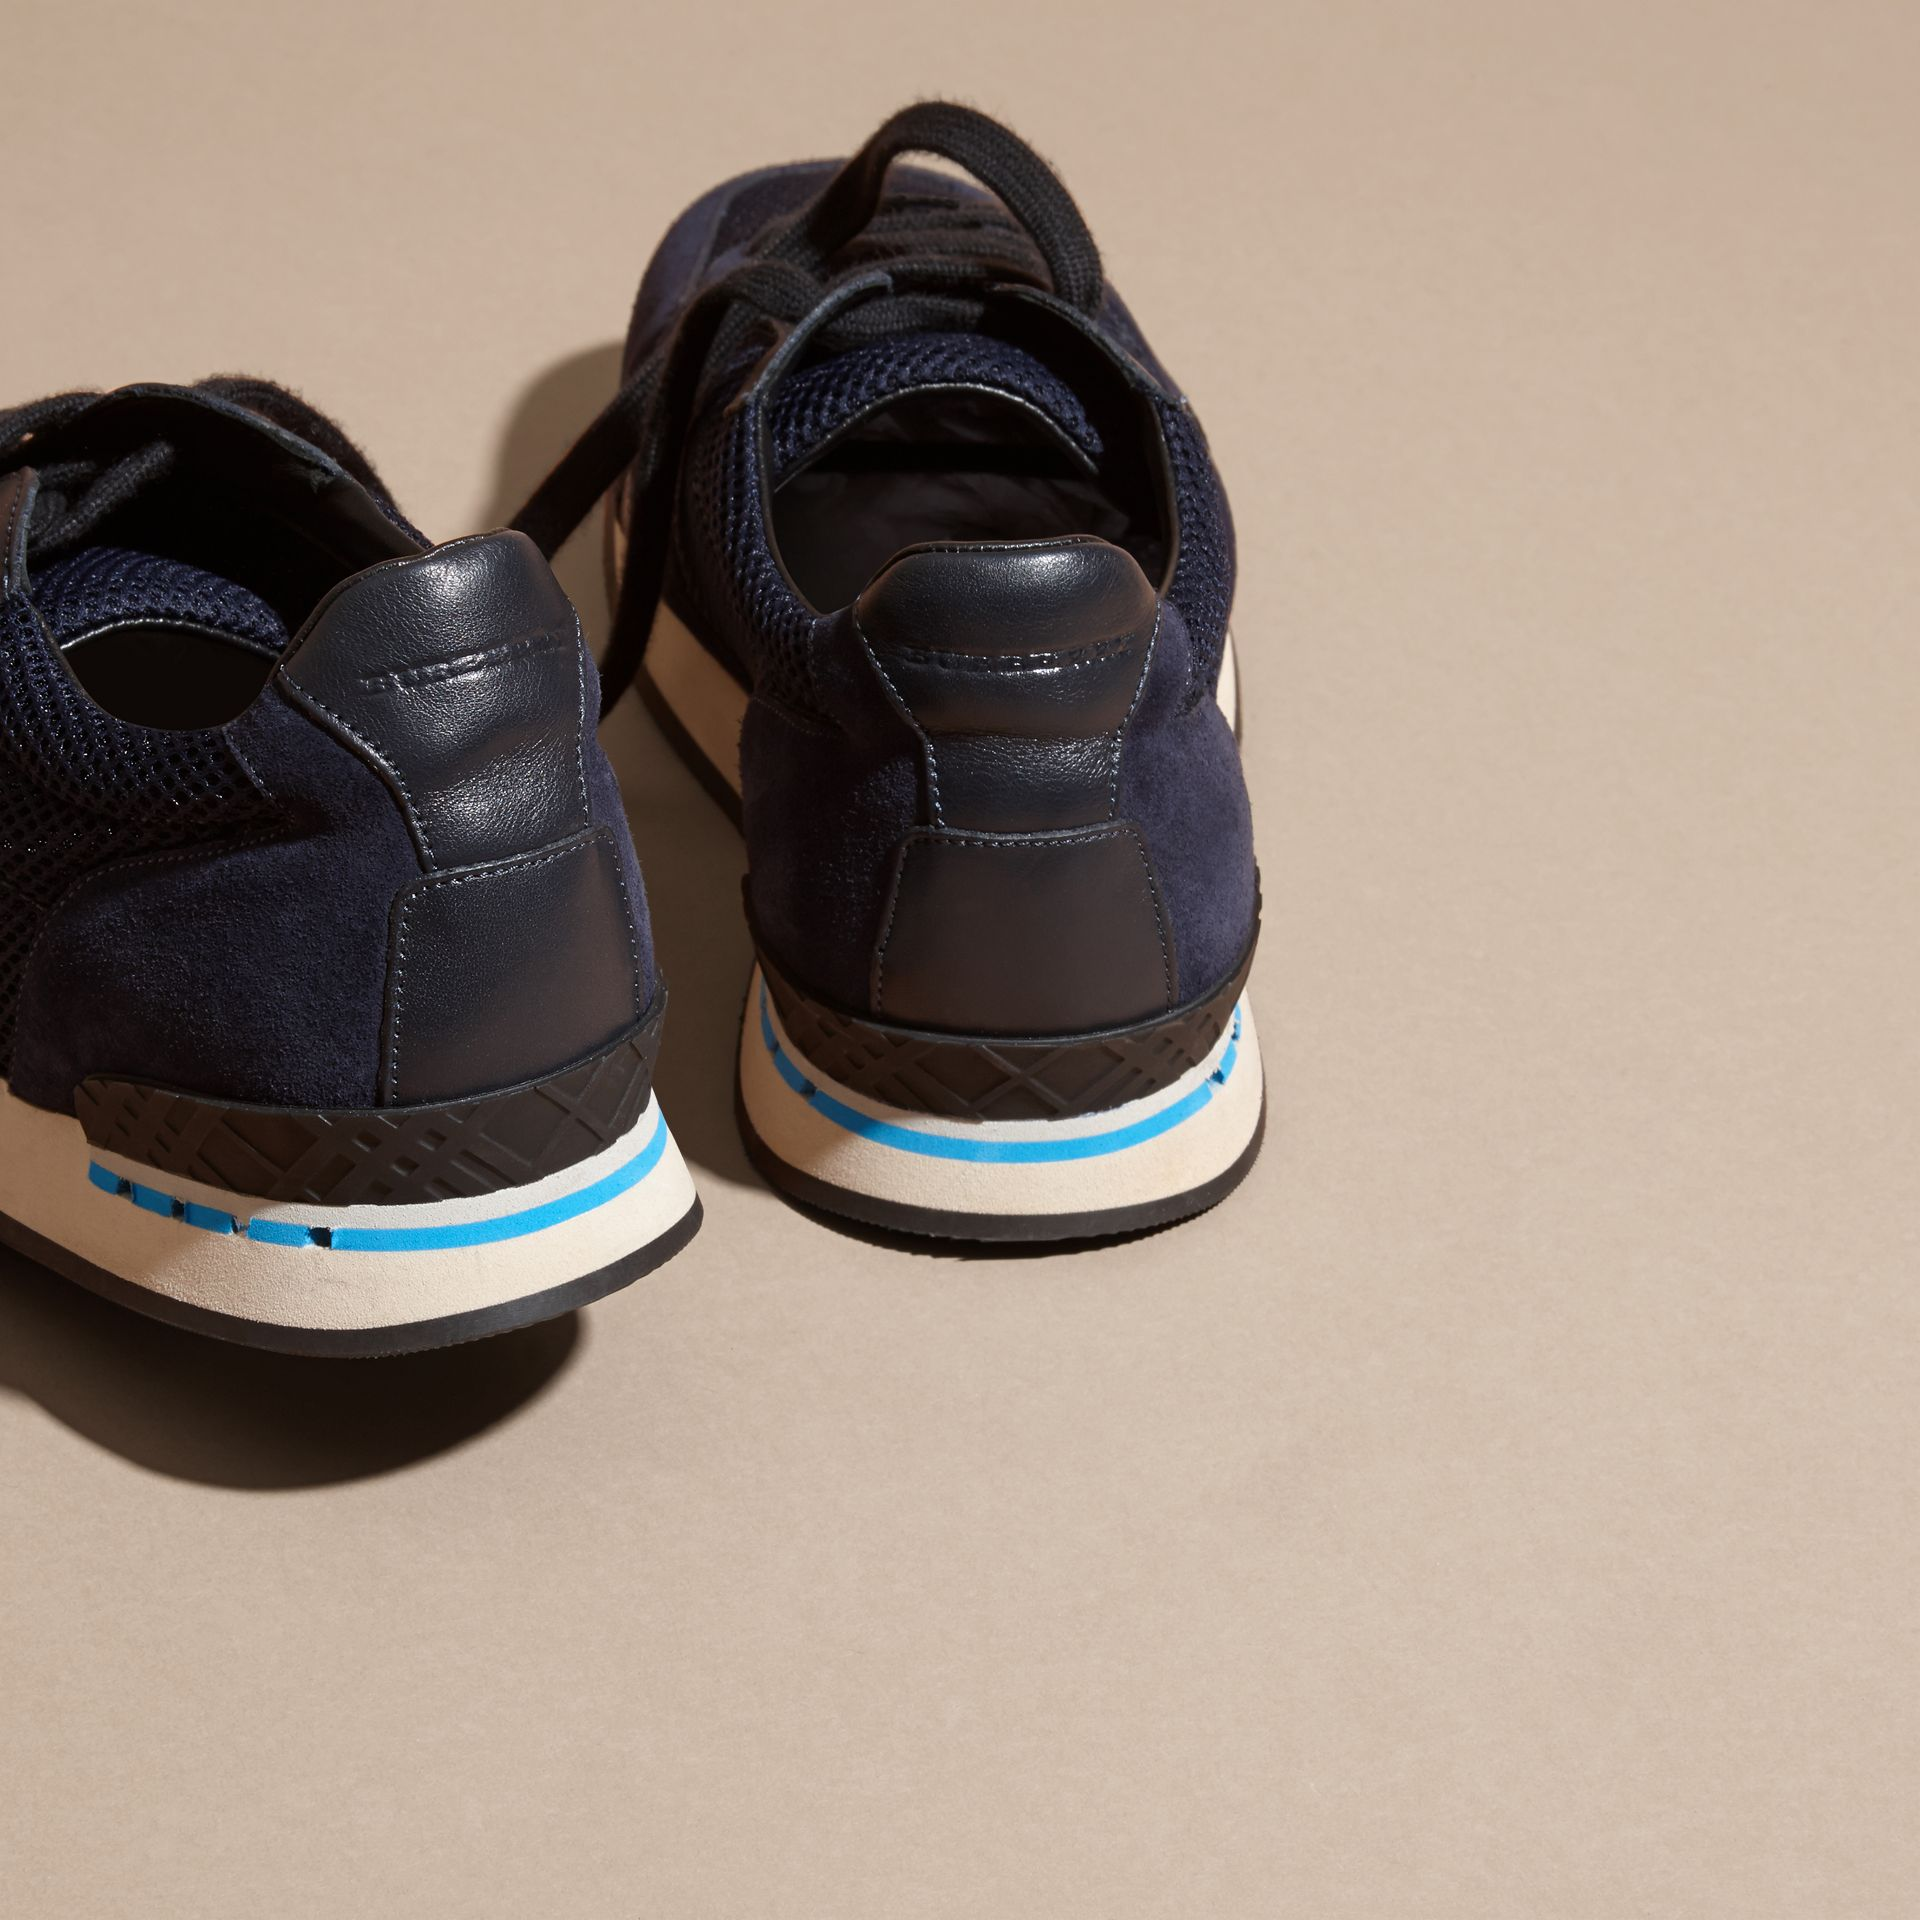 Navy The Field Sneaker in Suede and Mesh Navy - gallery image 4